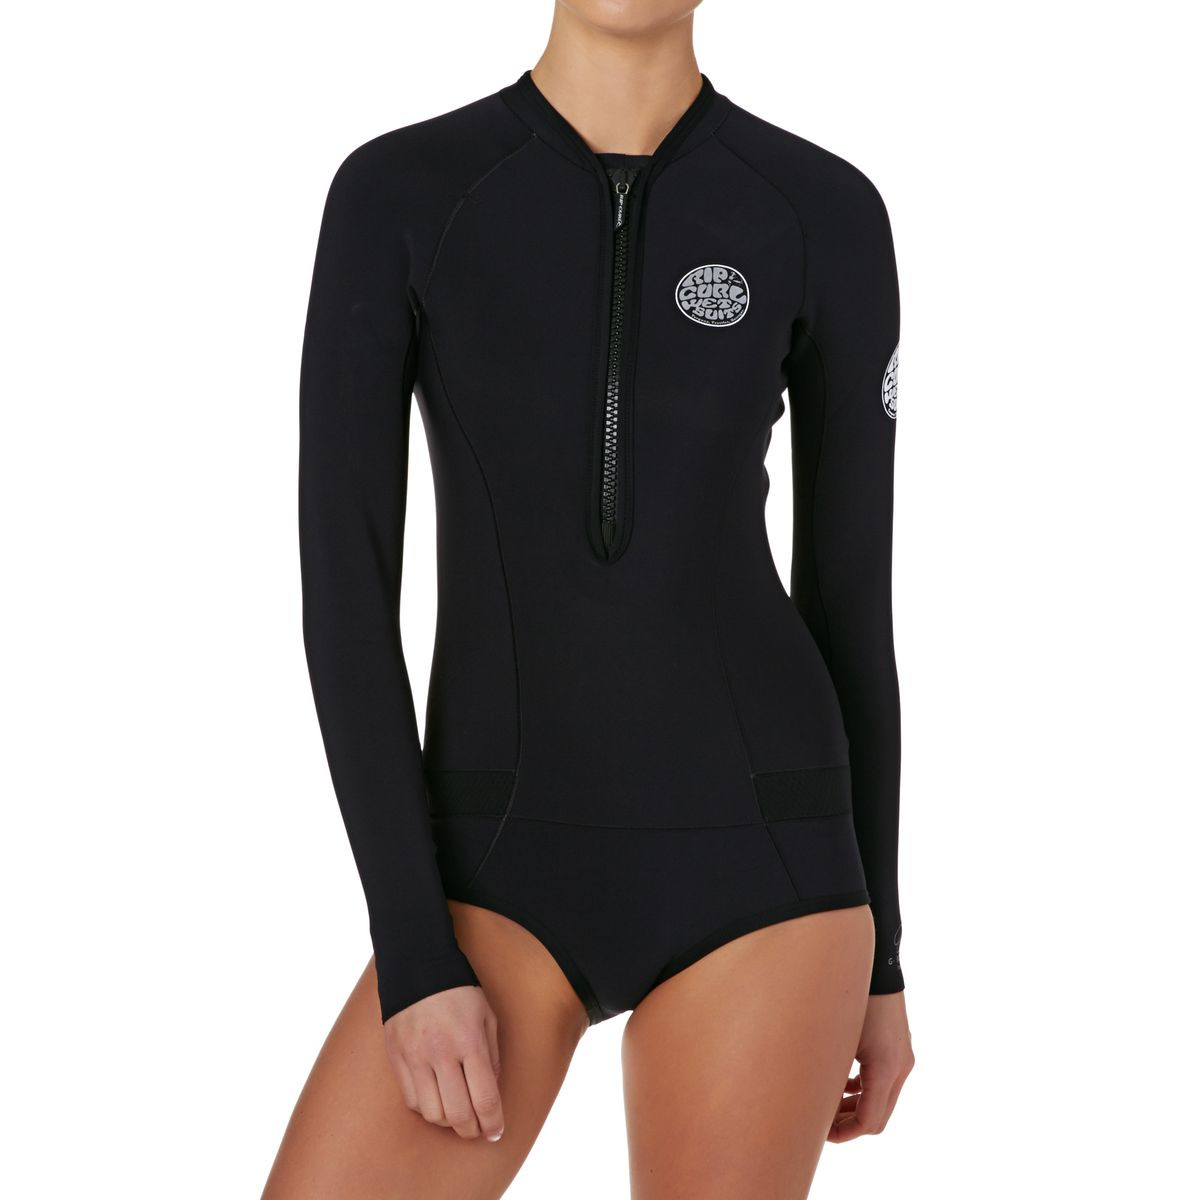 Rip Curl Womens G-bomb 1mm Front Zip Long Sleeve Hi Cut Shorty Wetsuit - Black